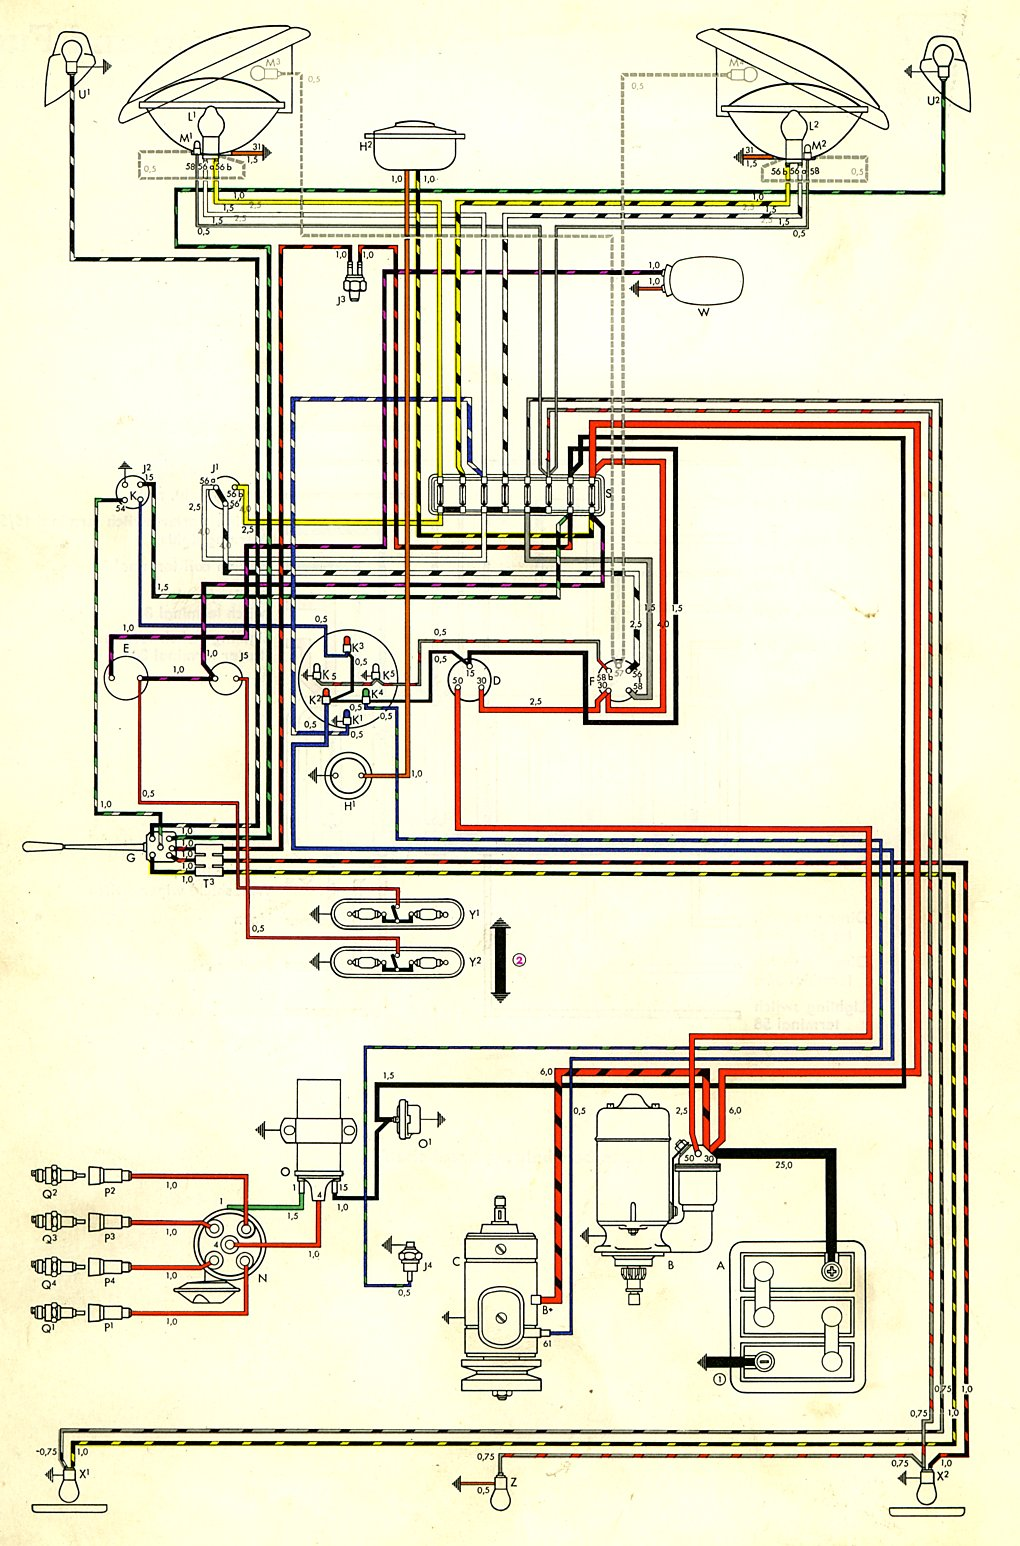 1971 Ford F250 Ignition Wiring Diagram Starting Know About Nova Ac Chevy Truck Rh Prezzy Co